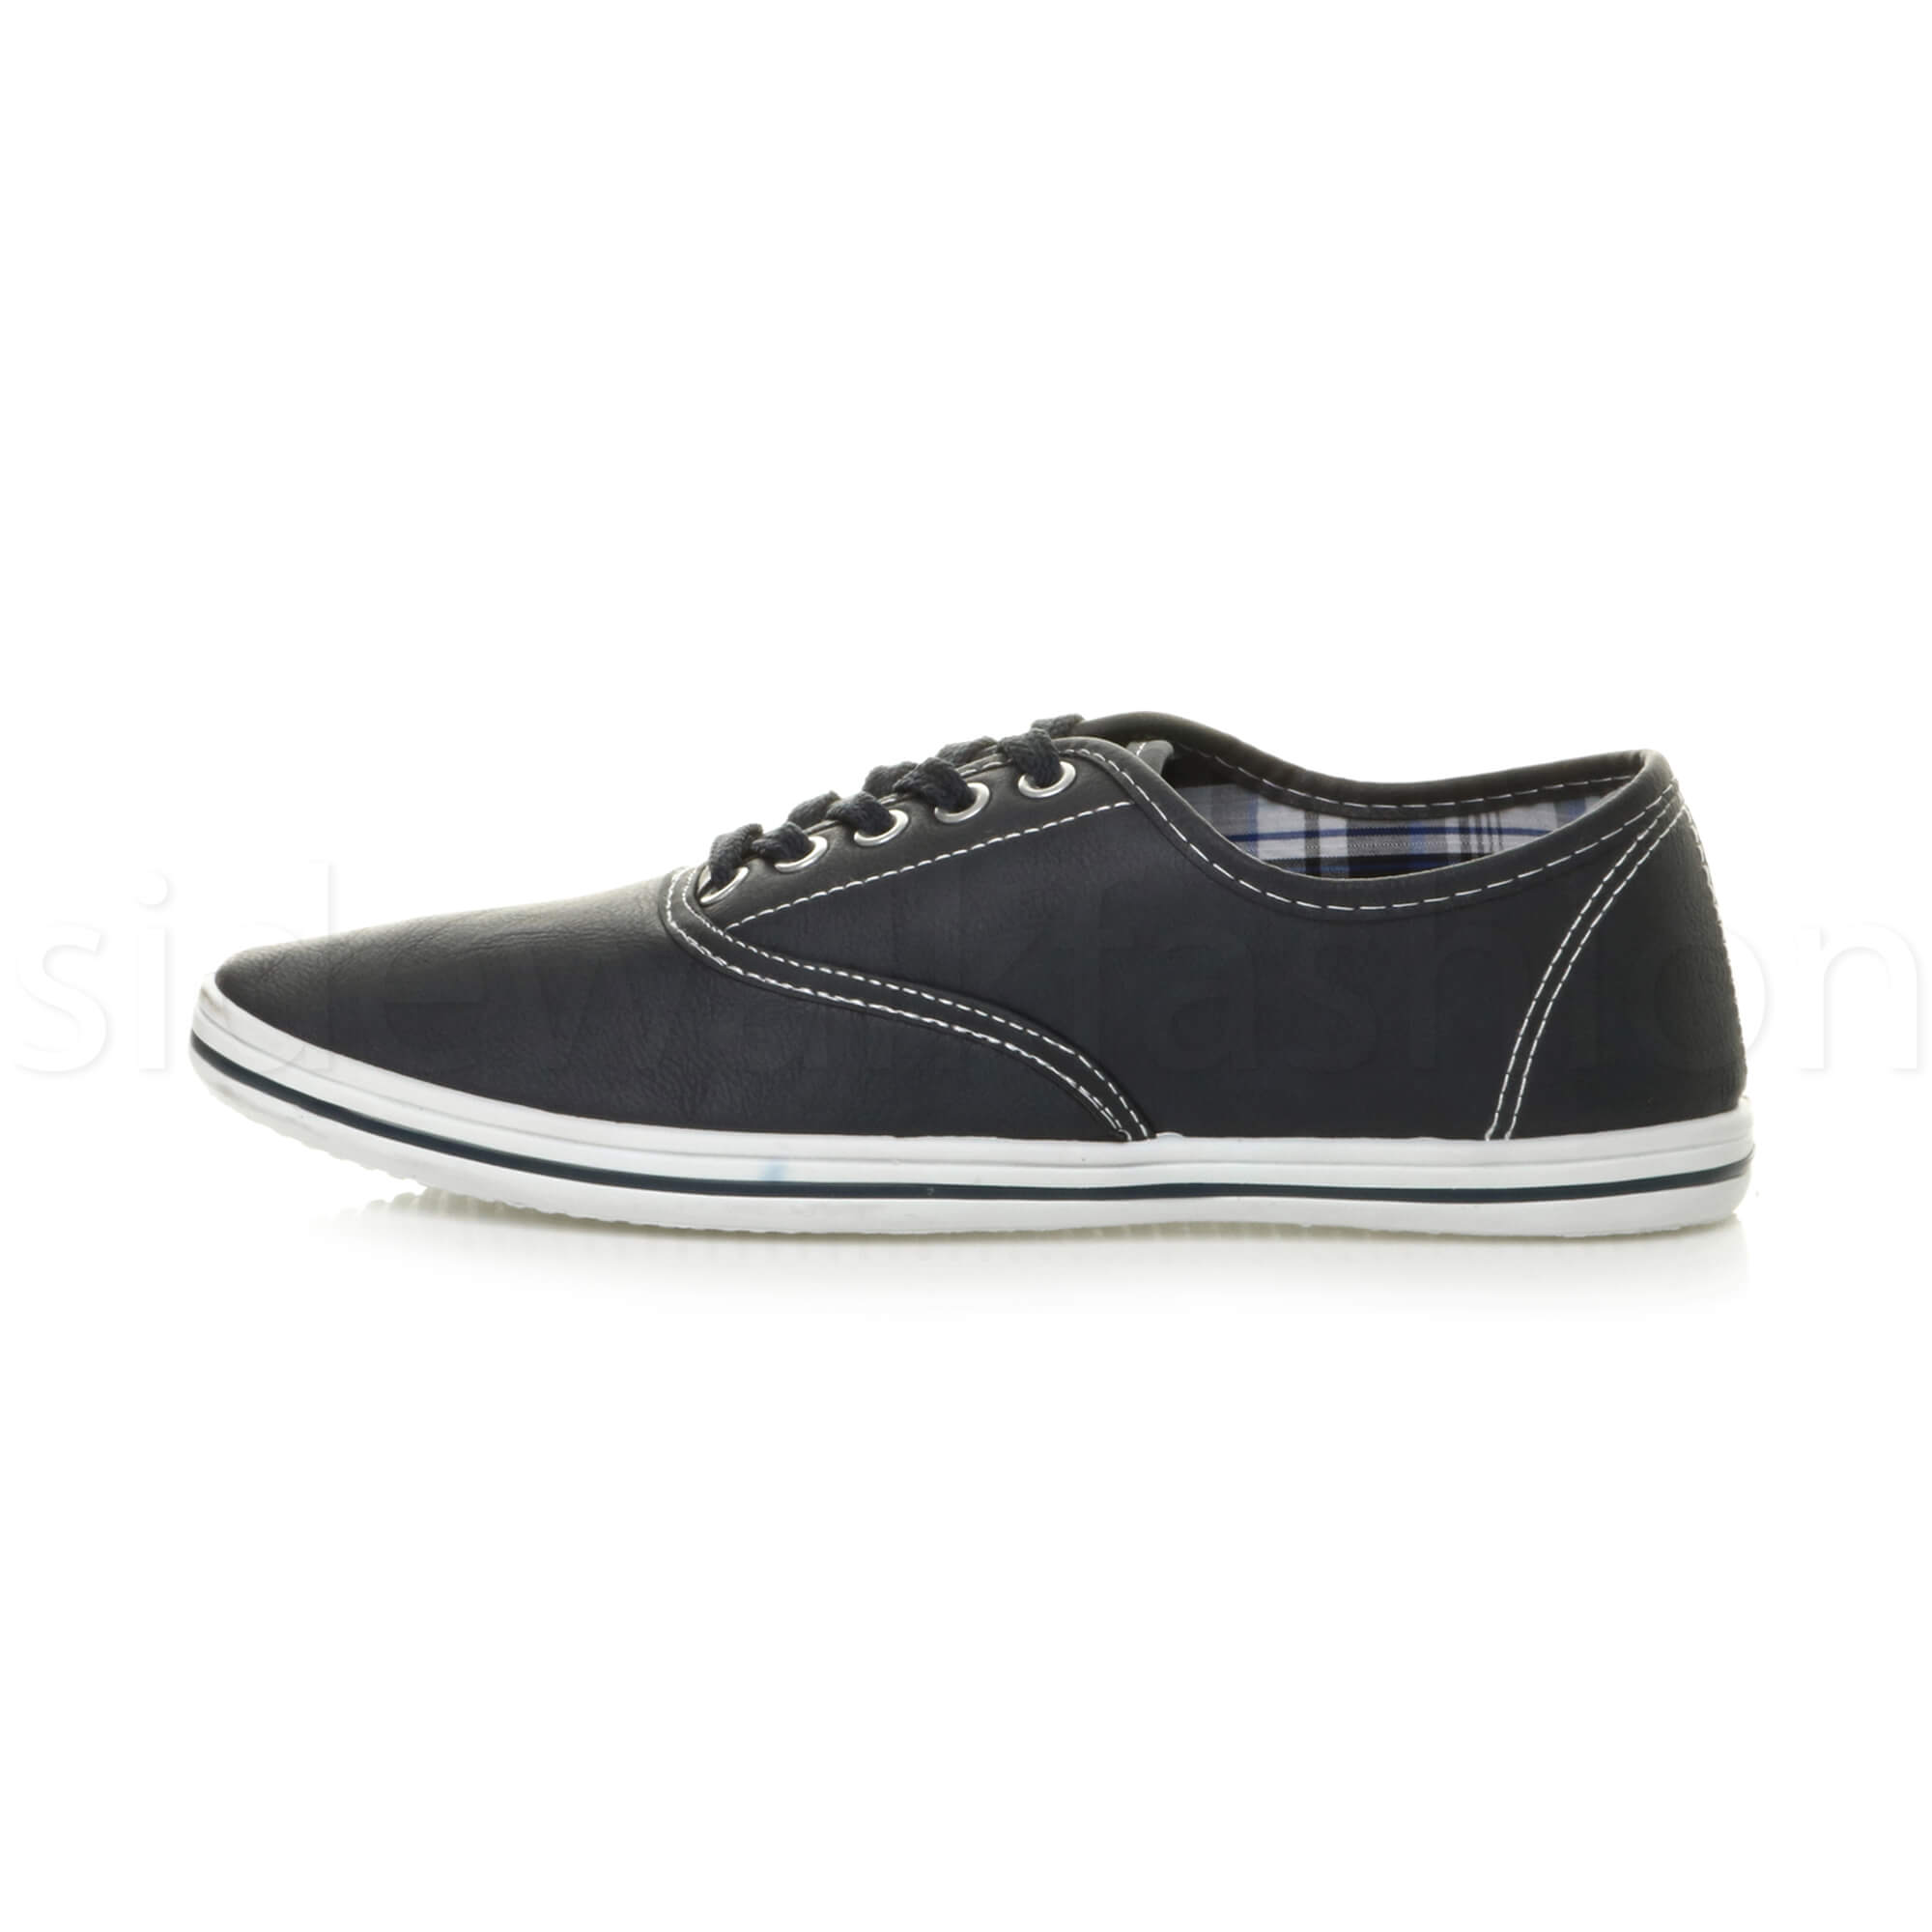 Mens-flat-lace-up-work-smart-plain-casual-pump-plimsoles-trainers-shoes-size thumbnail 10